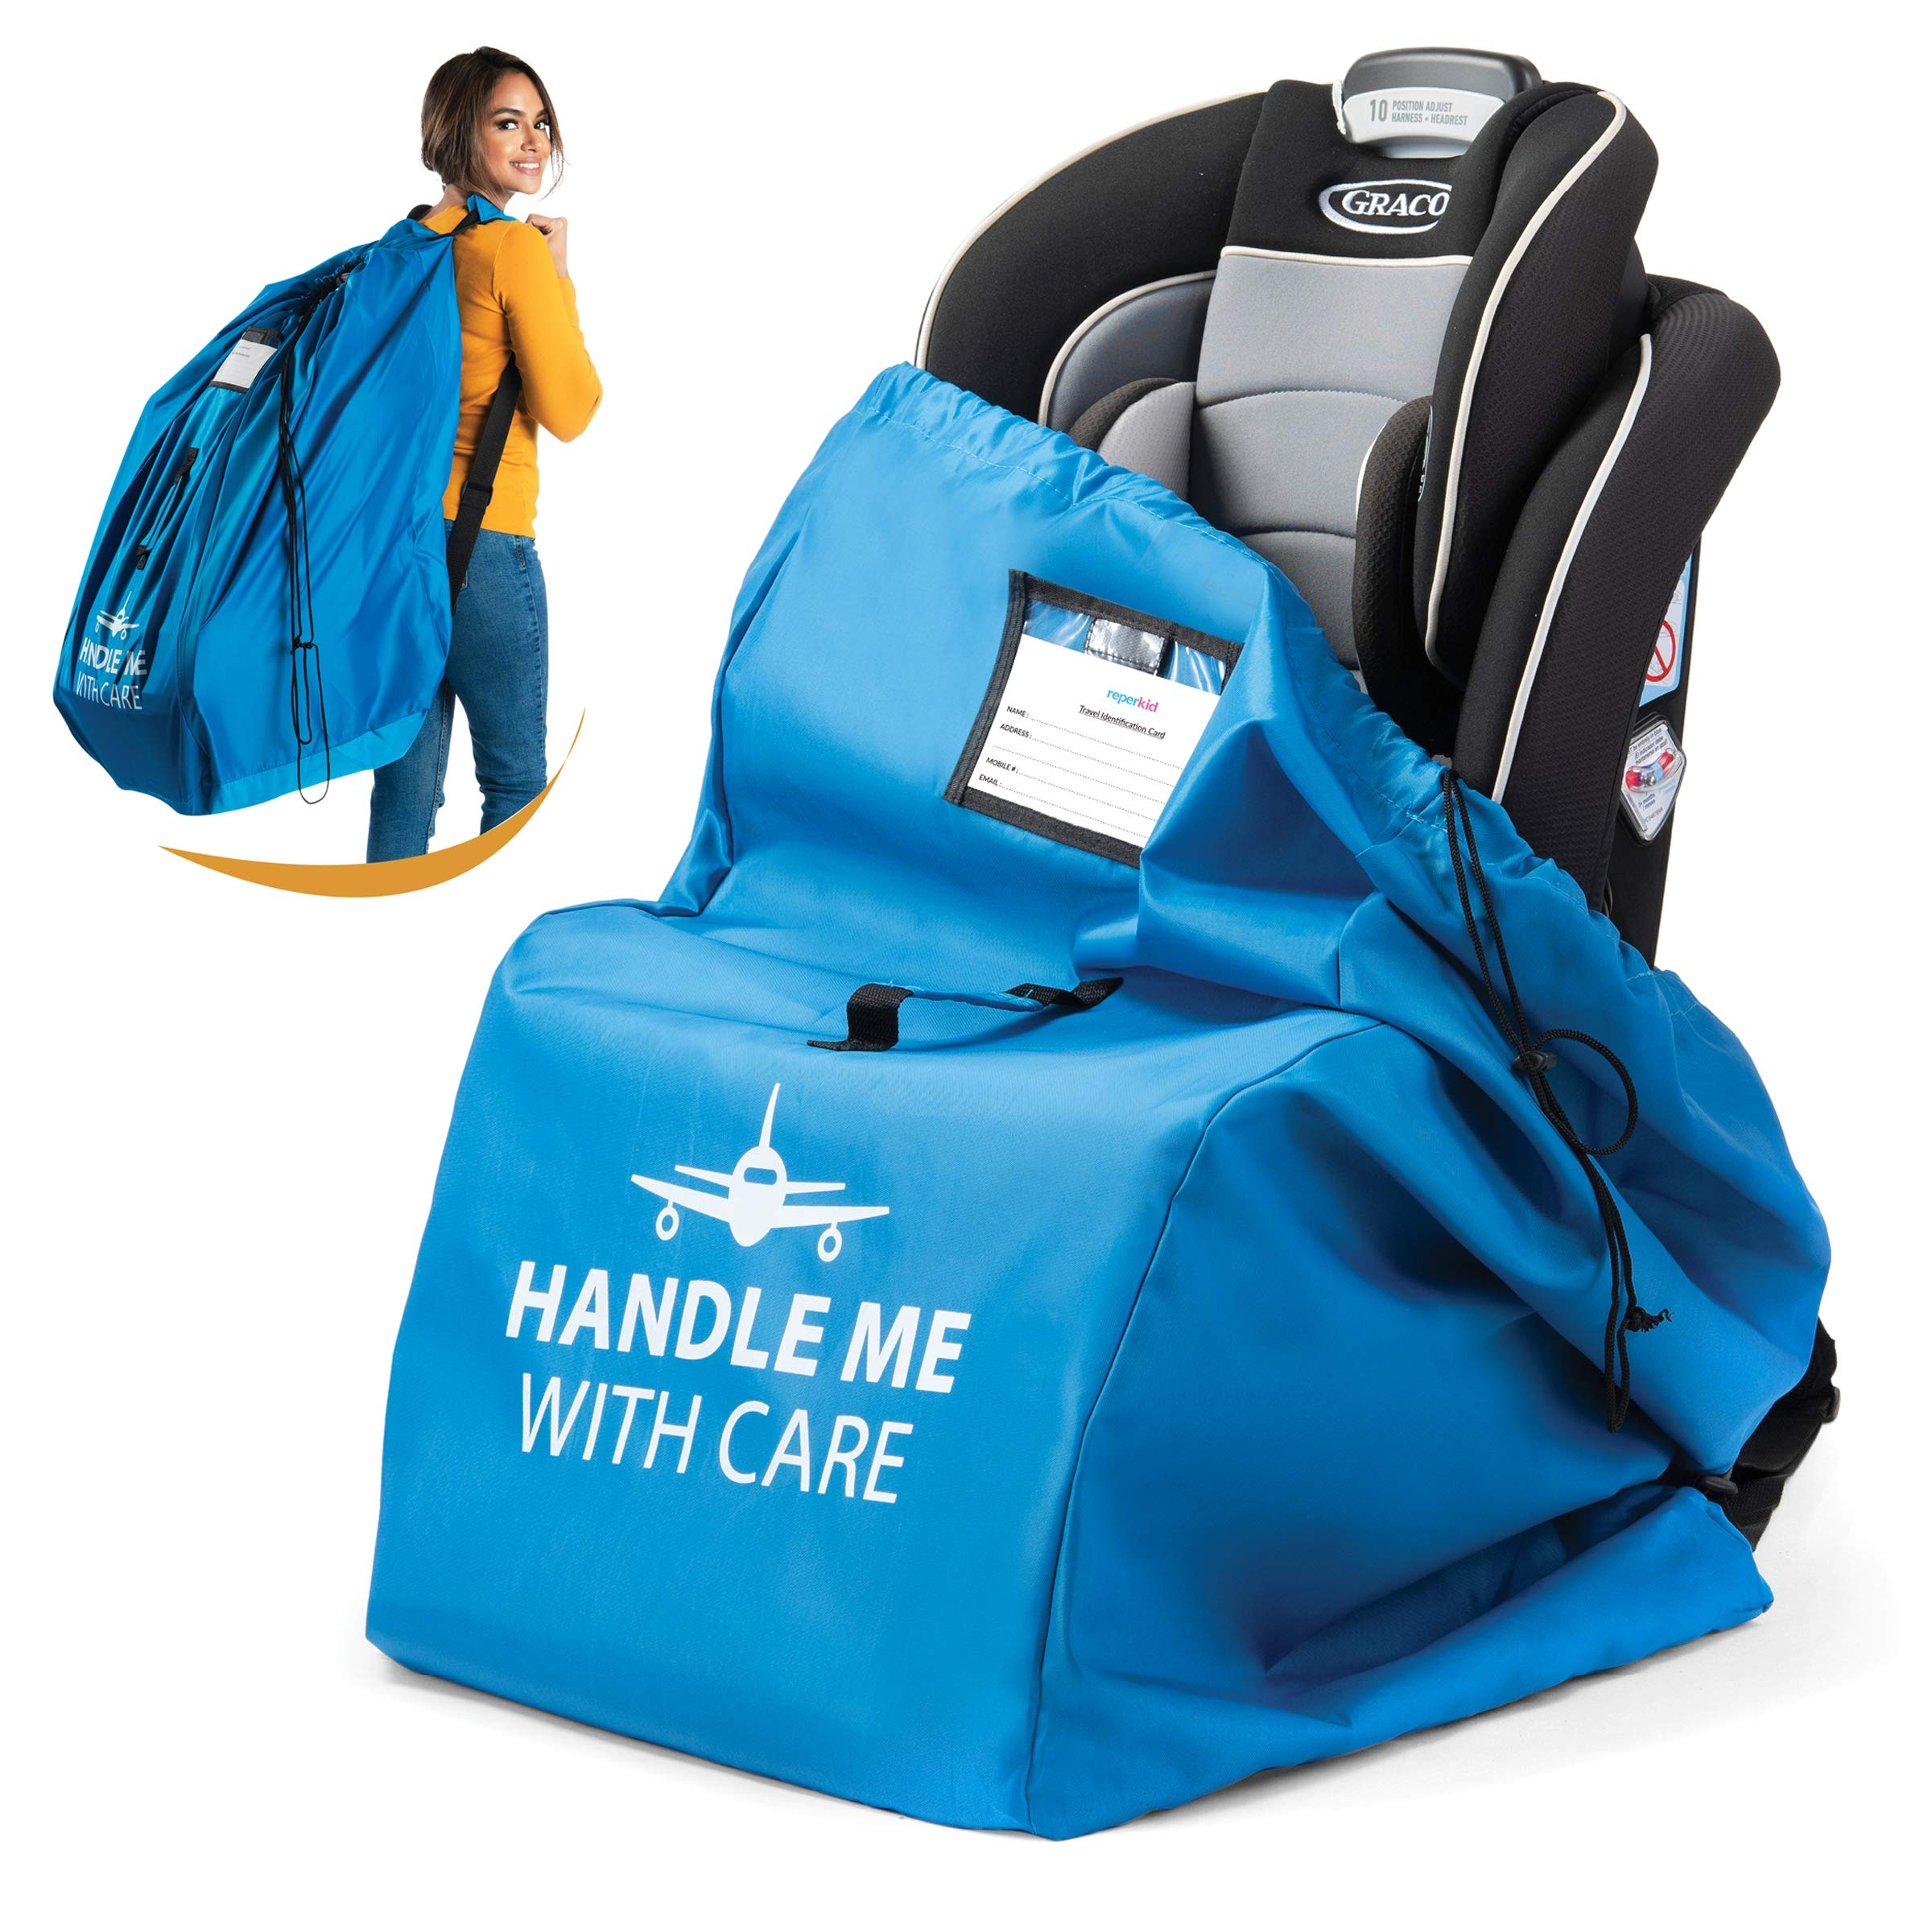 Car Seat Travel Bag for Airplane. Bonus E-Book. Protect from Germs. Safe & Secure. Pouch and Backpack Easy to Carry   Ideal Airplane Gate Check Bag for Car Seats & Booster   Universal Size